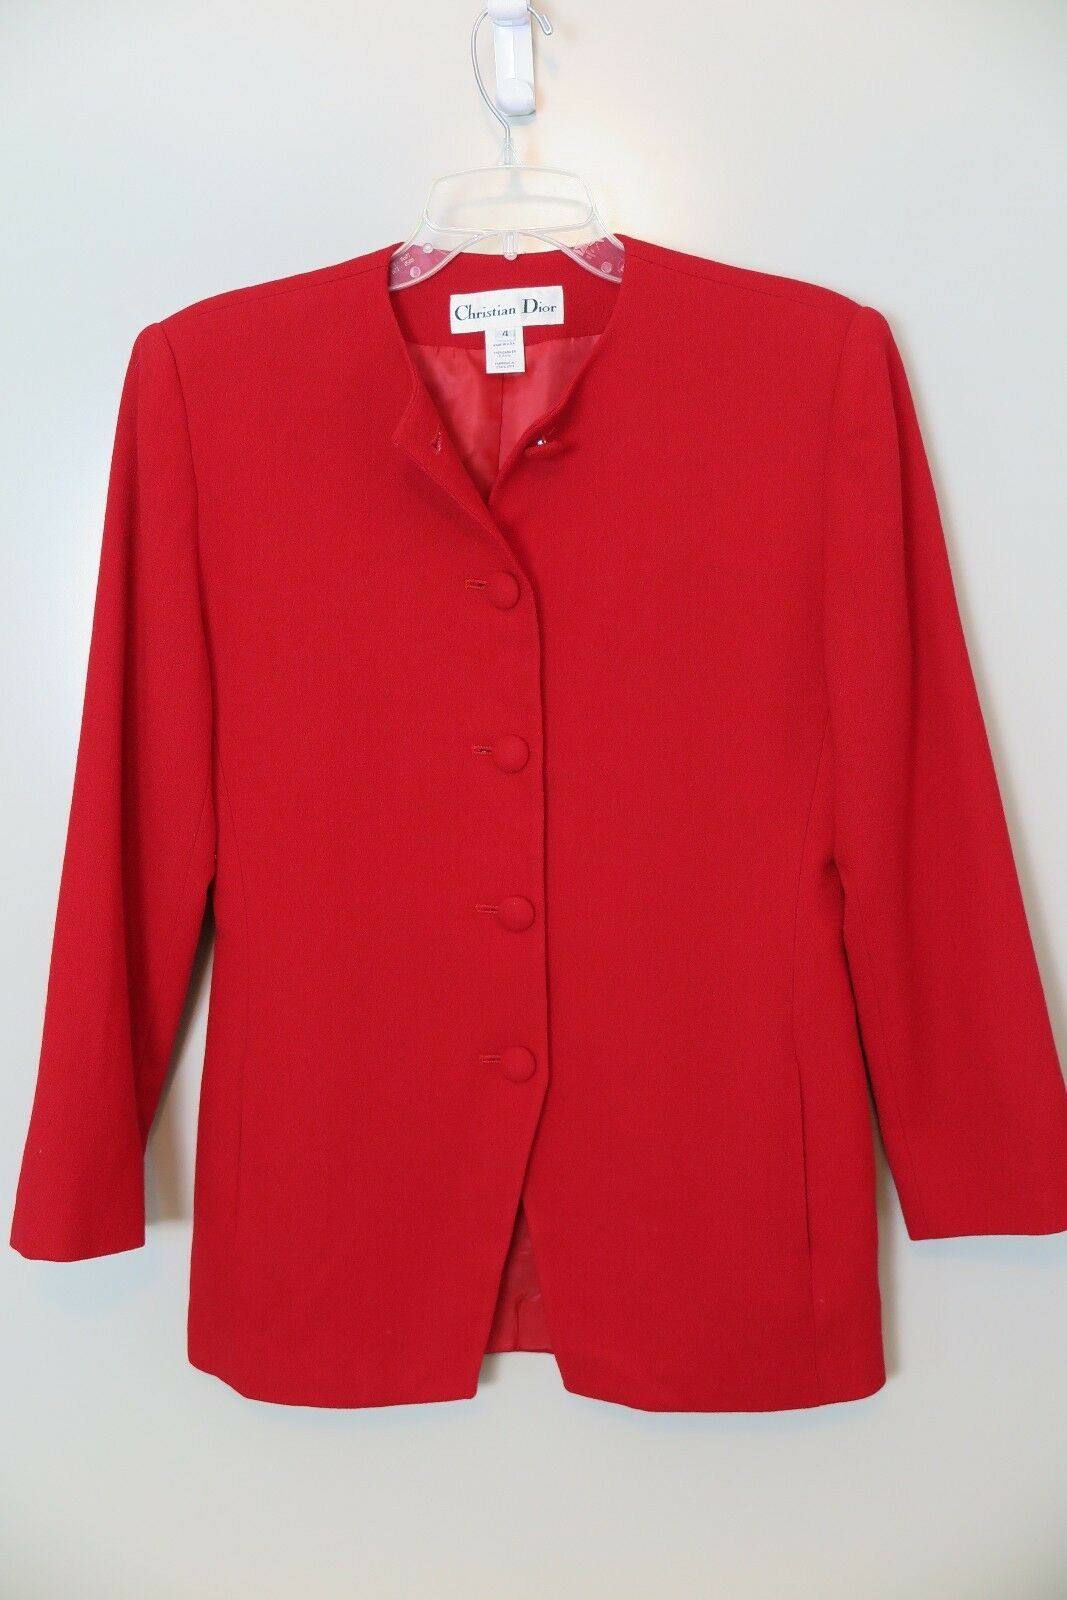 CHRISTIAN DIOR Red Wool Fully Lined Coat Size 4 Made in USA.